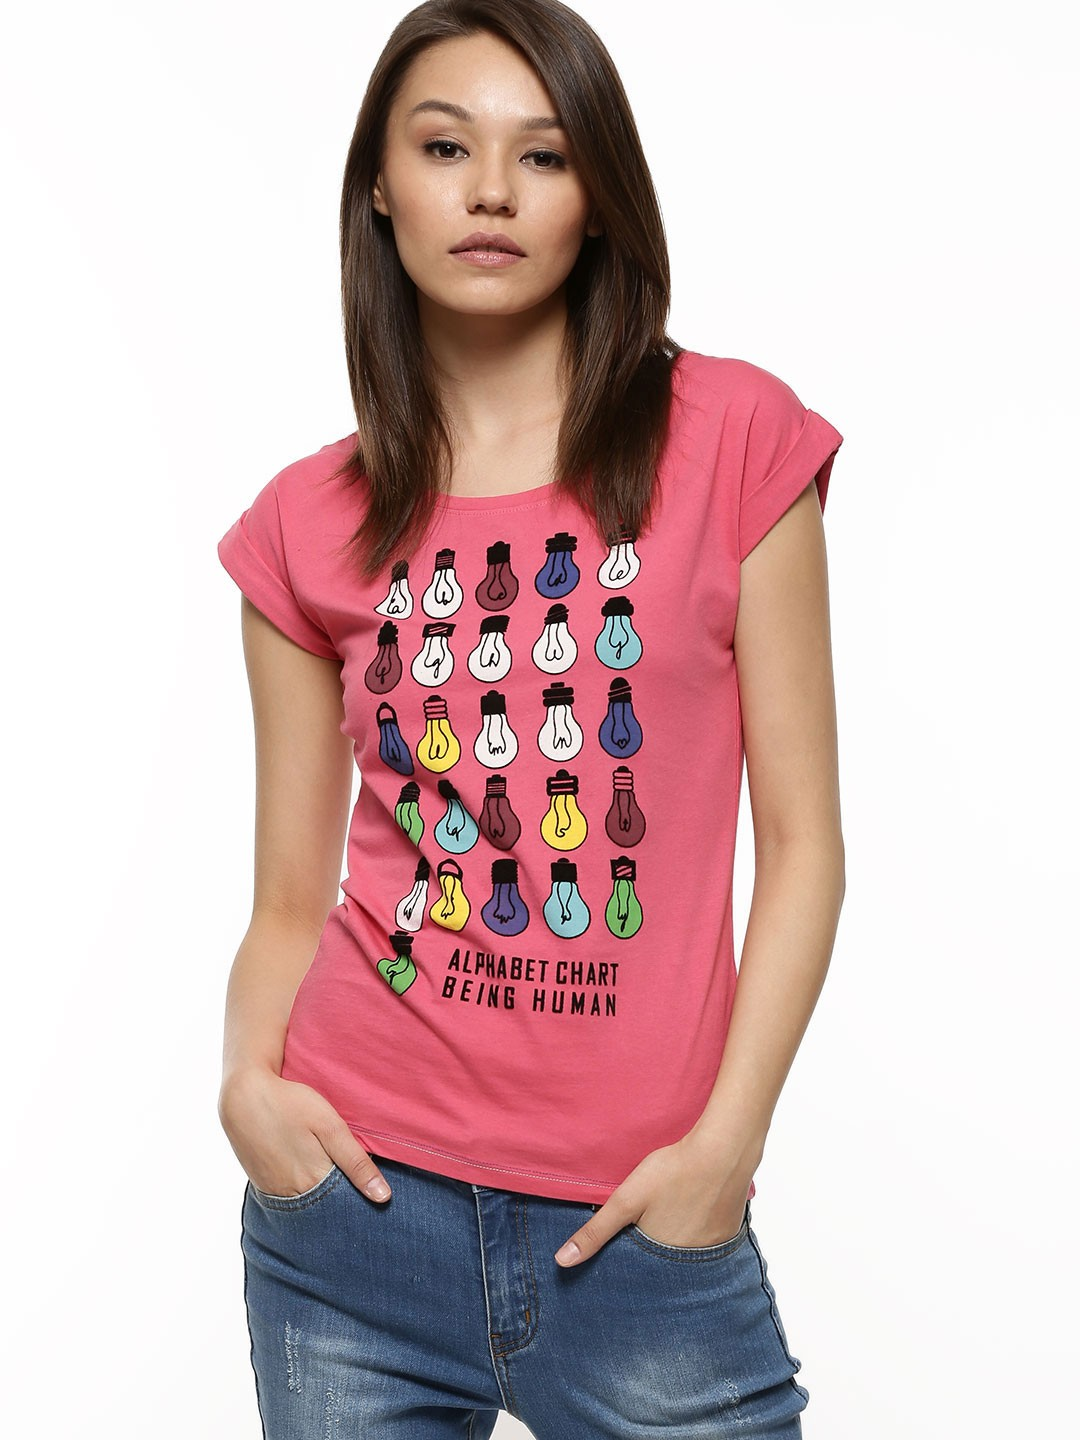 Buy being human graphic print t shirt for women women 39 s for Being human t shirts buy online india